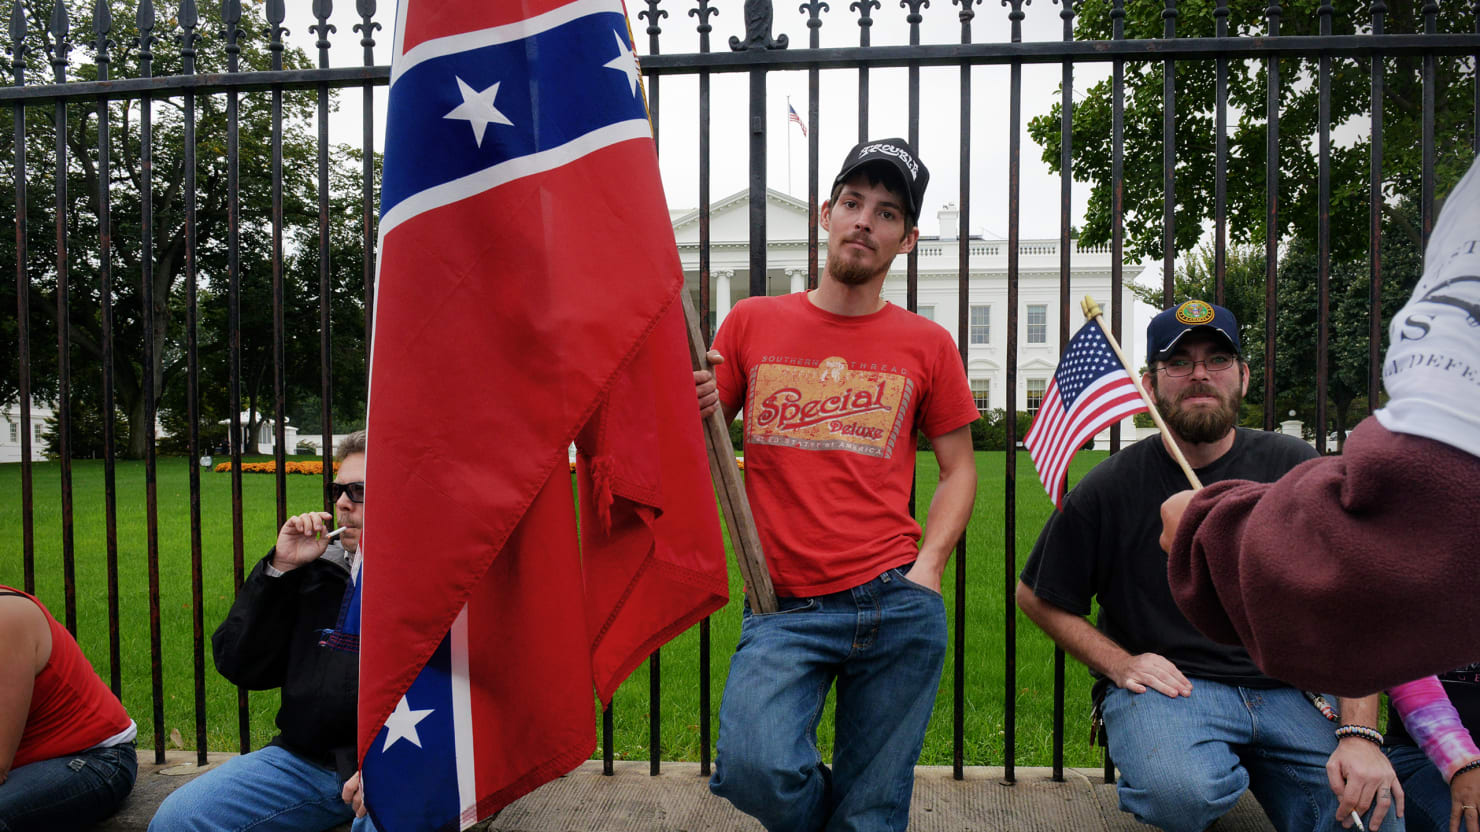 Ghosts of the Confederacy Out in Force as Fringe Rules GOP